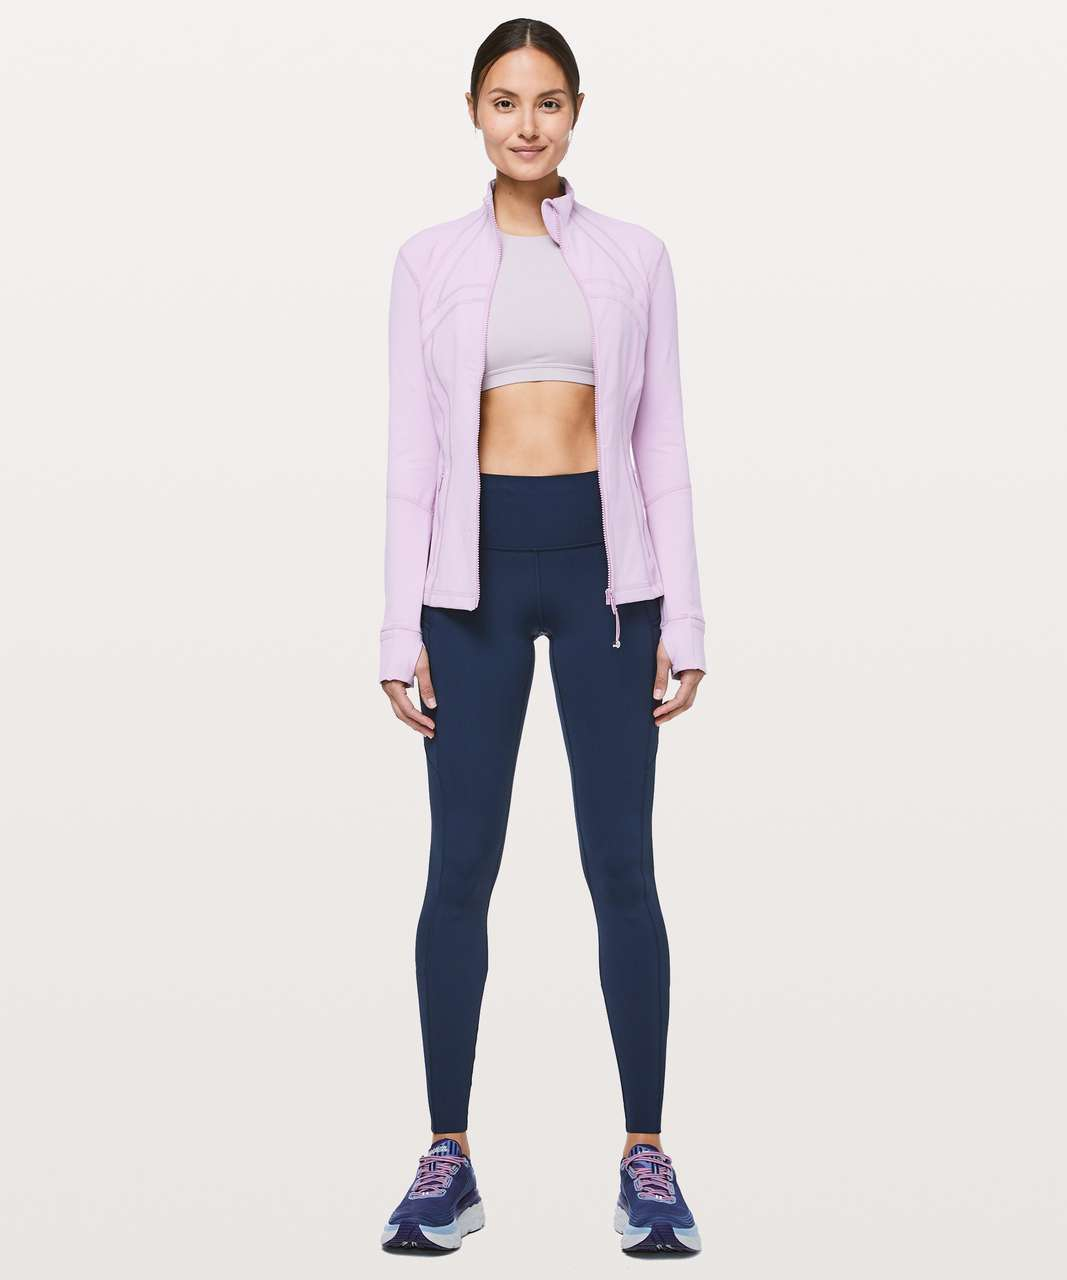 Lululemon Define Jacket - Antoinette